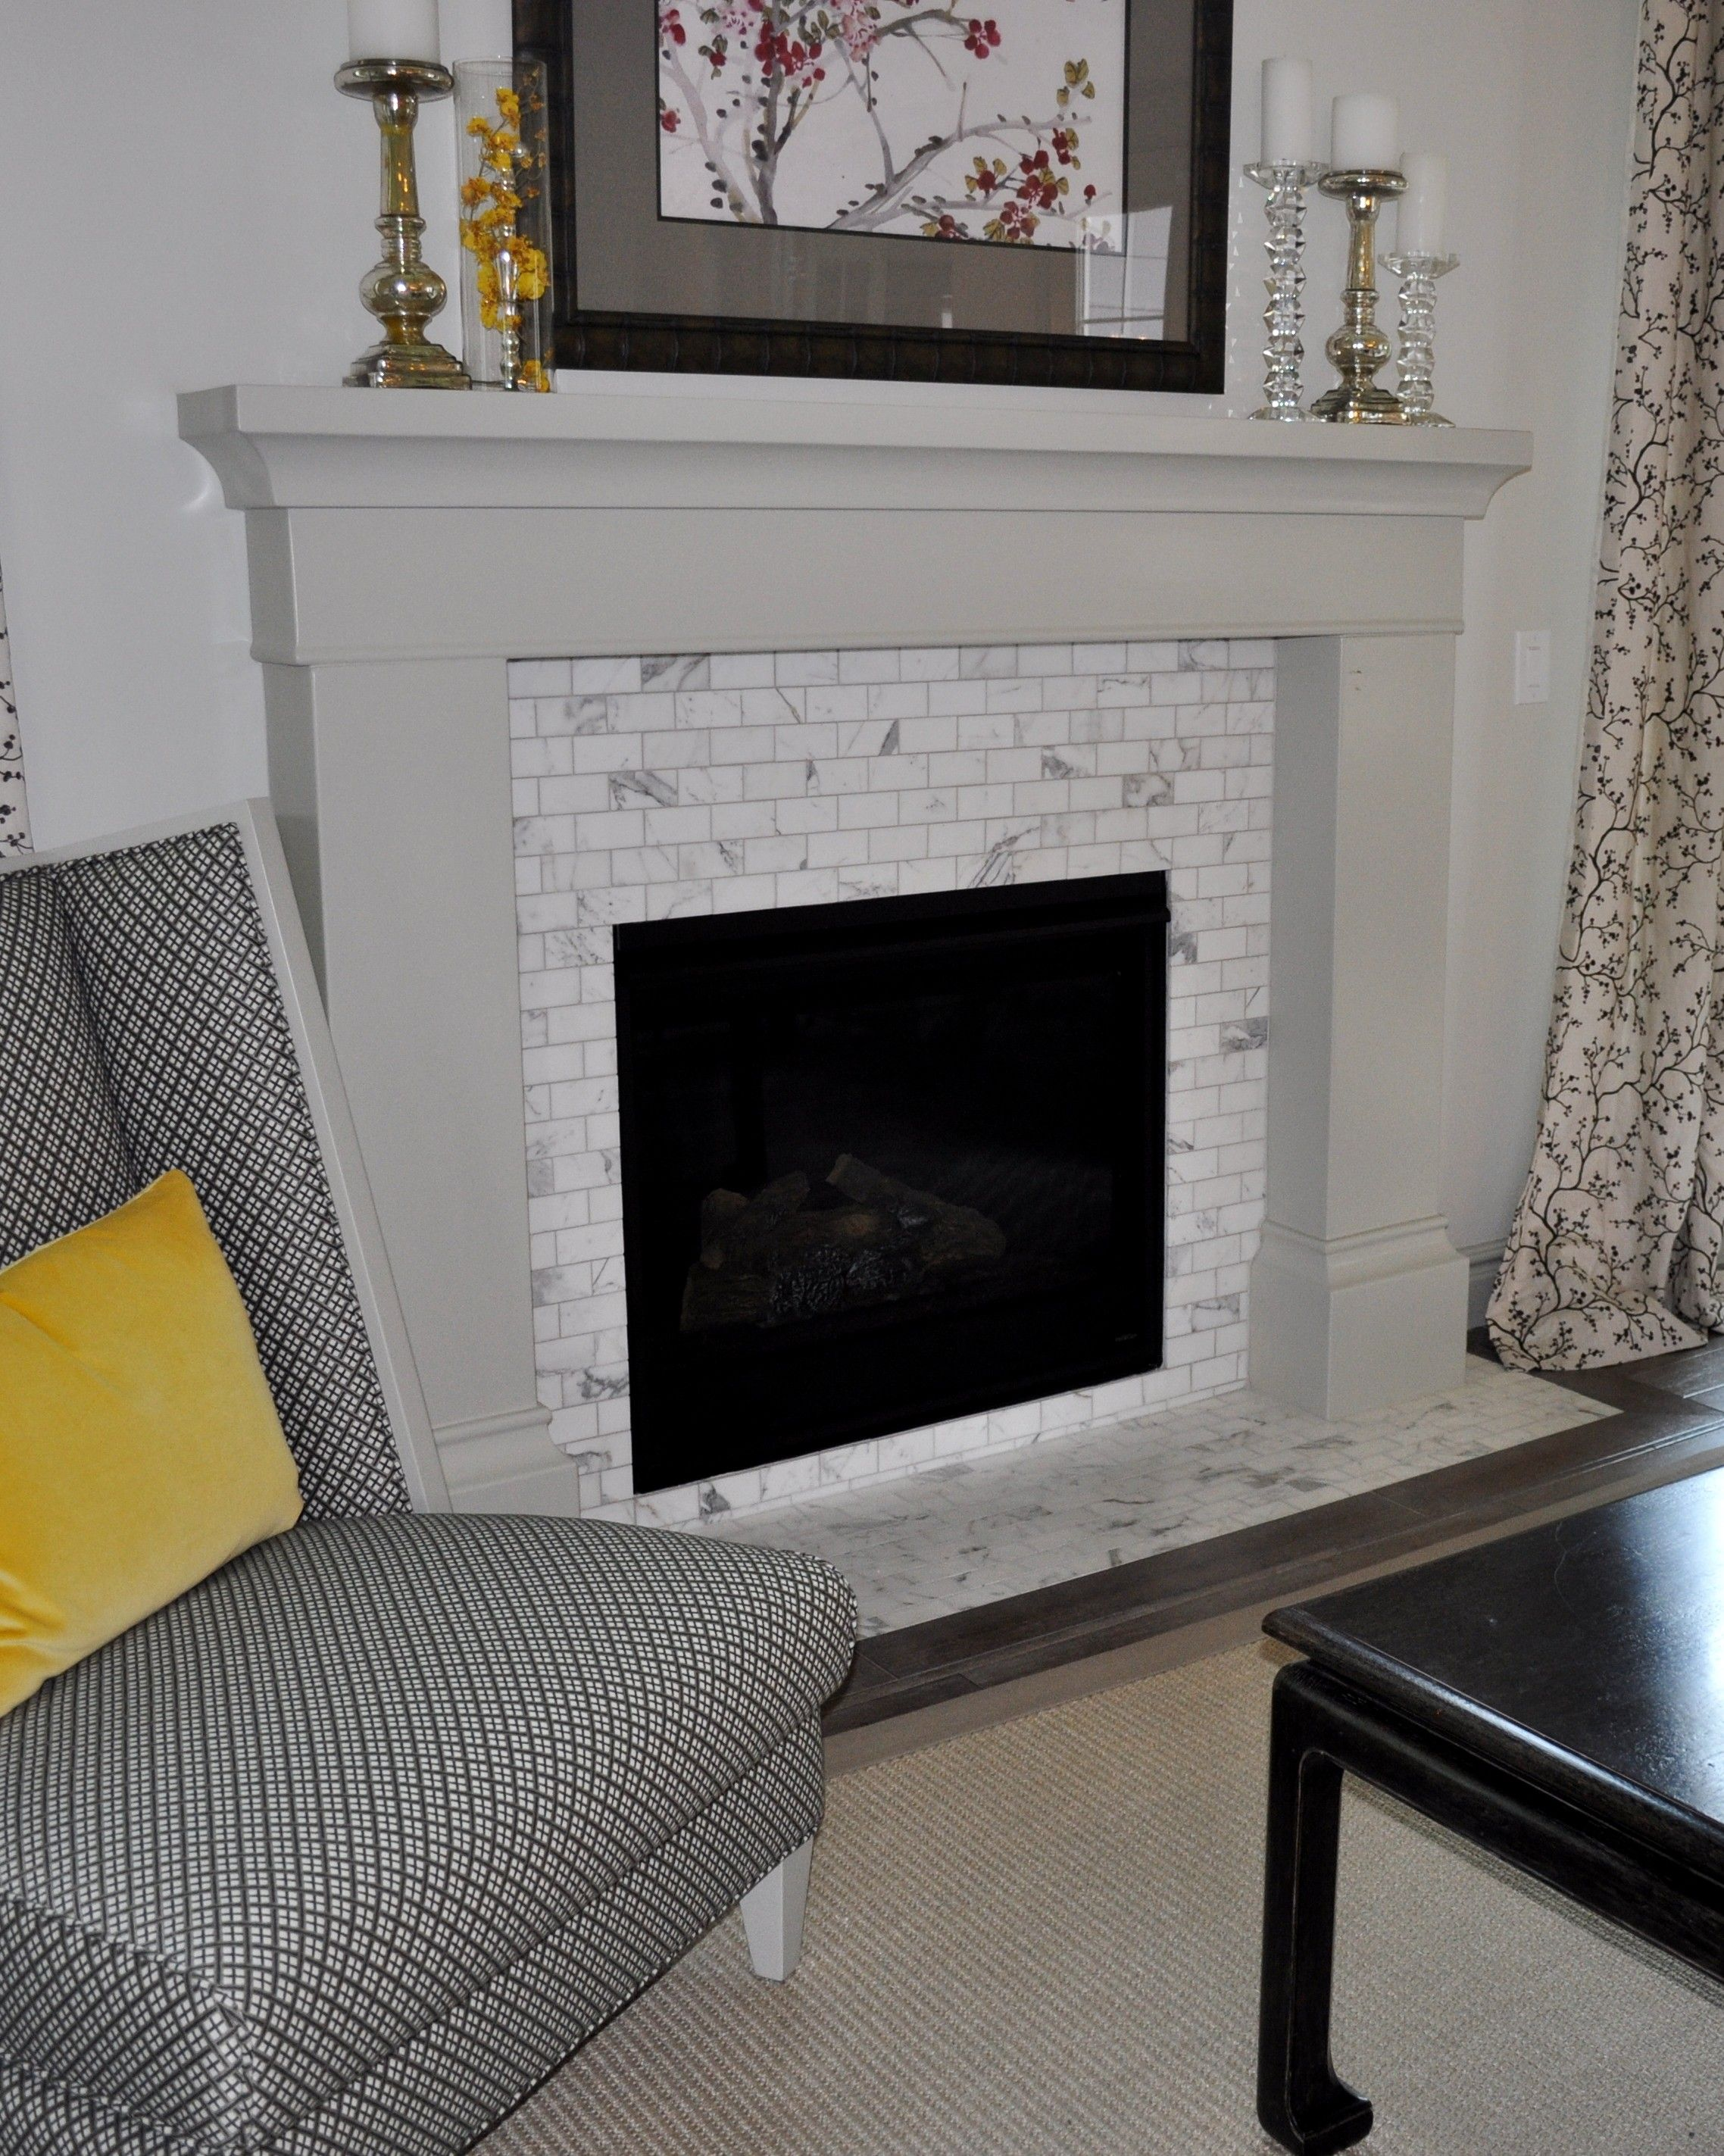 Stone Mountain Castings fillers are amazing accents to any room! Add a different twist onto your wall make it stand out! Smooth walls can be boring add some stone and a a simply beautiful mantel!